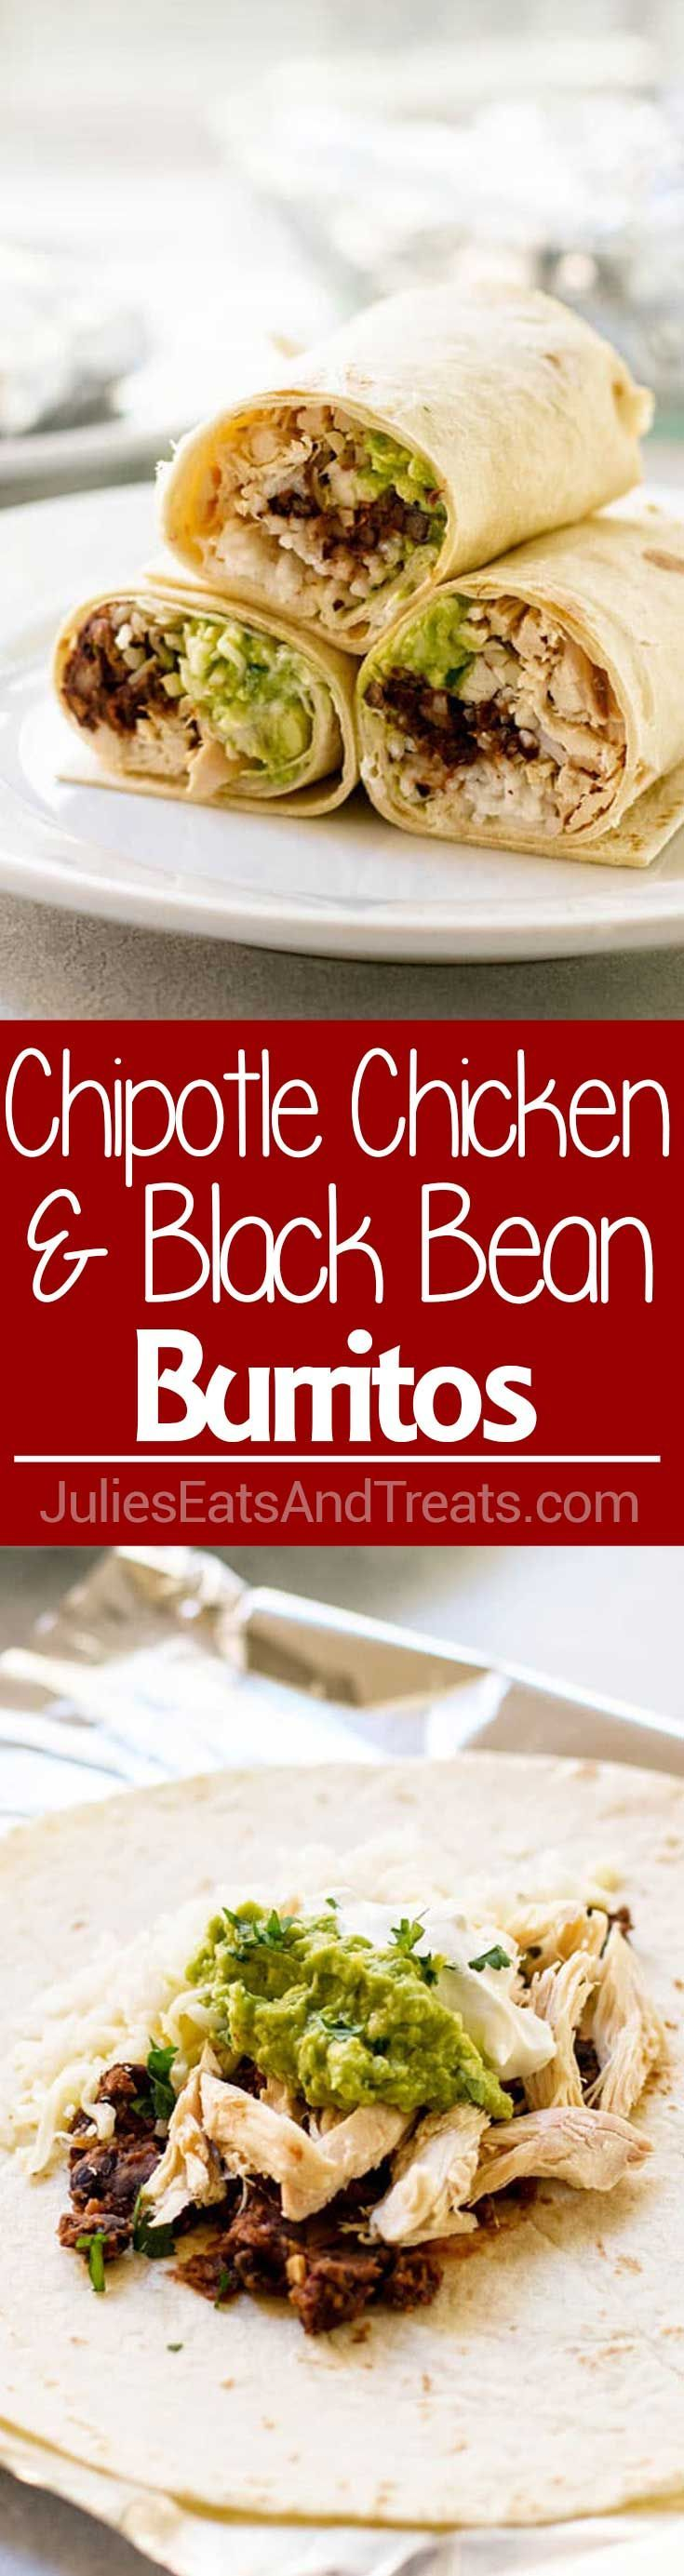 Chipotle Chicken and Black Bean Burritos ~ These Chipotle Chicken and Black Bean Burritos Great for Busy Nights When You Need an Easy Dinner Recipe! Stuffed with Rice, Chicken, Black Beans, Avocado, Sour Cream and Cheese! via @julieseats